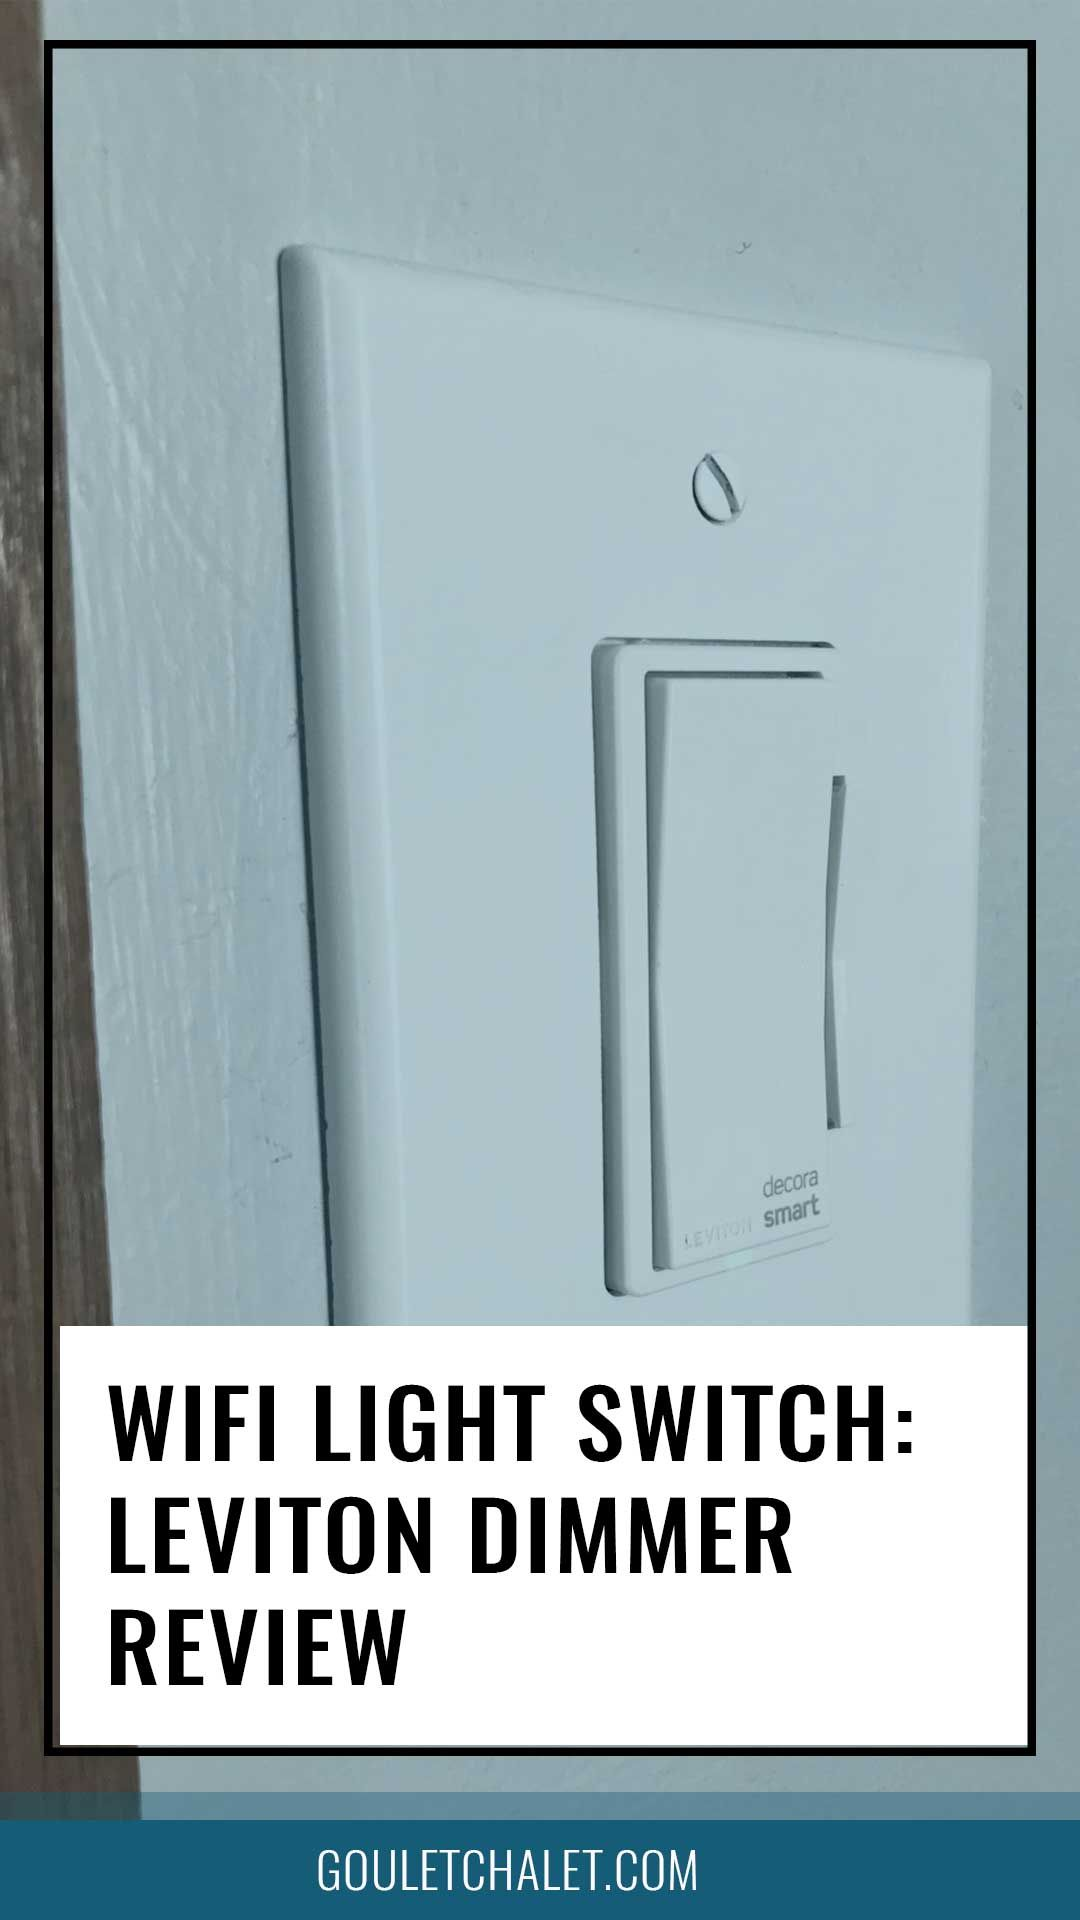 WIFI light swtich review  Convert your home to a smart home